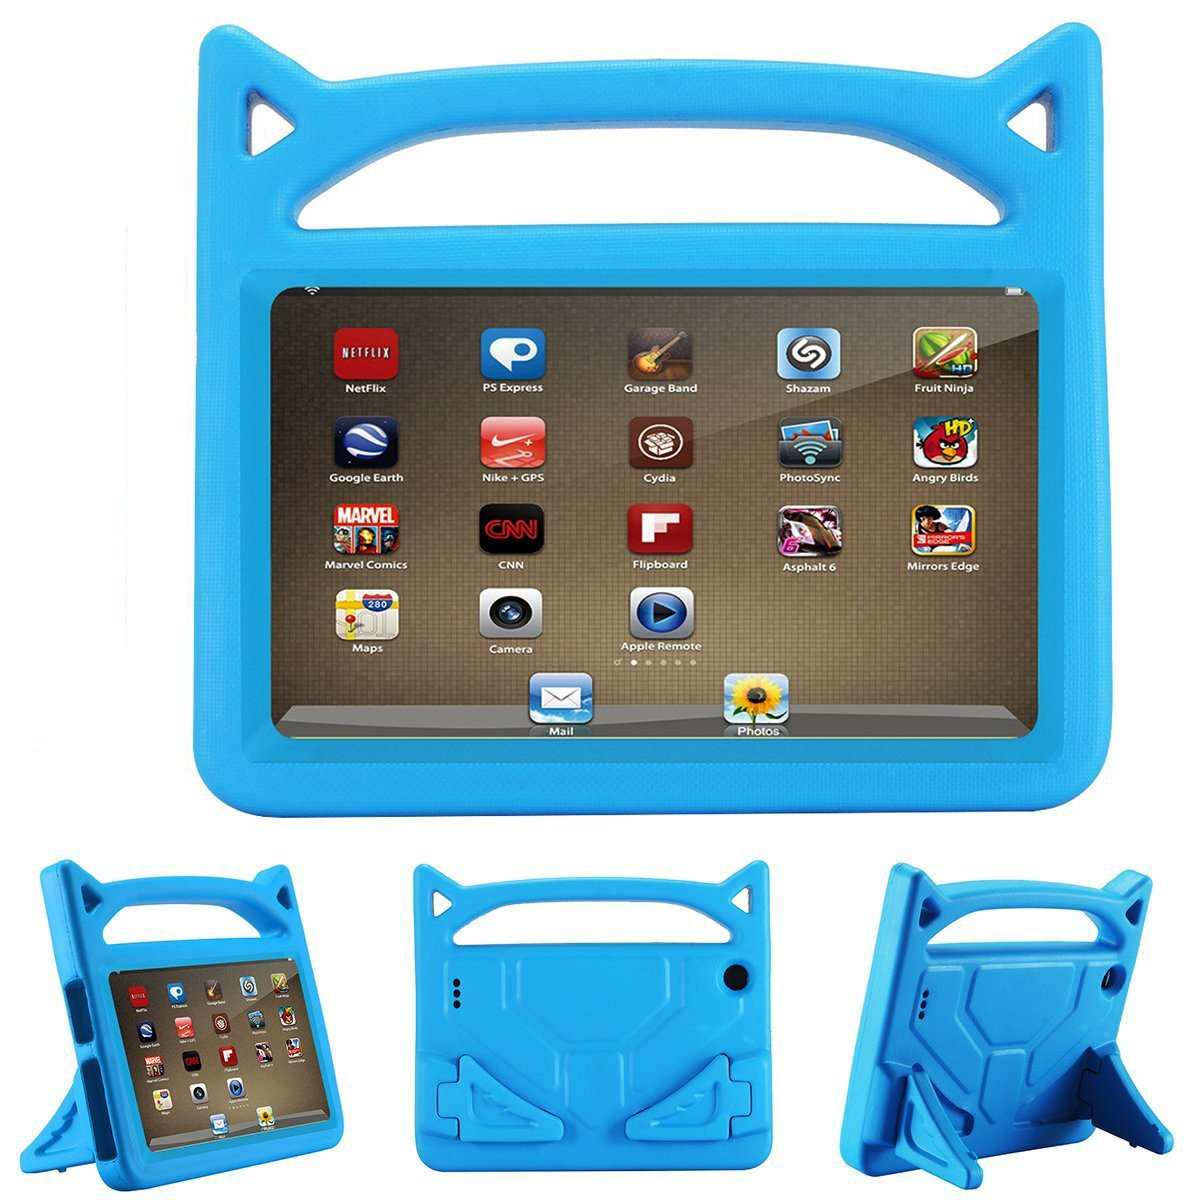 All-New Fire HD 8 Case for kids - YooNow Light Weight Shock Proof Convertible Handle Kid-Proof Cover Kids Case for Amazon Fire HD 8 inch Display Tablet (2017/2016 Release,7th/6th Generation) (Blue)